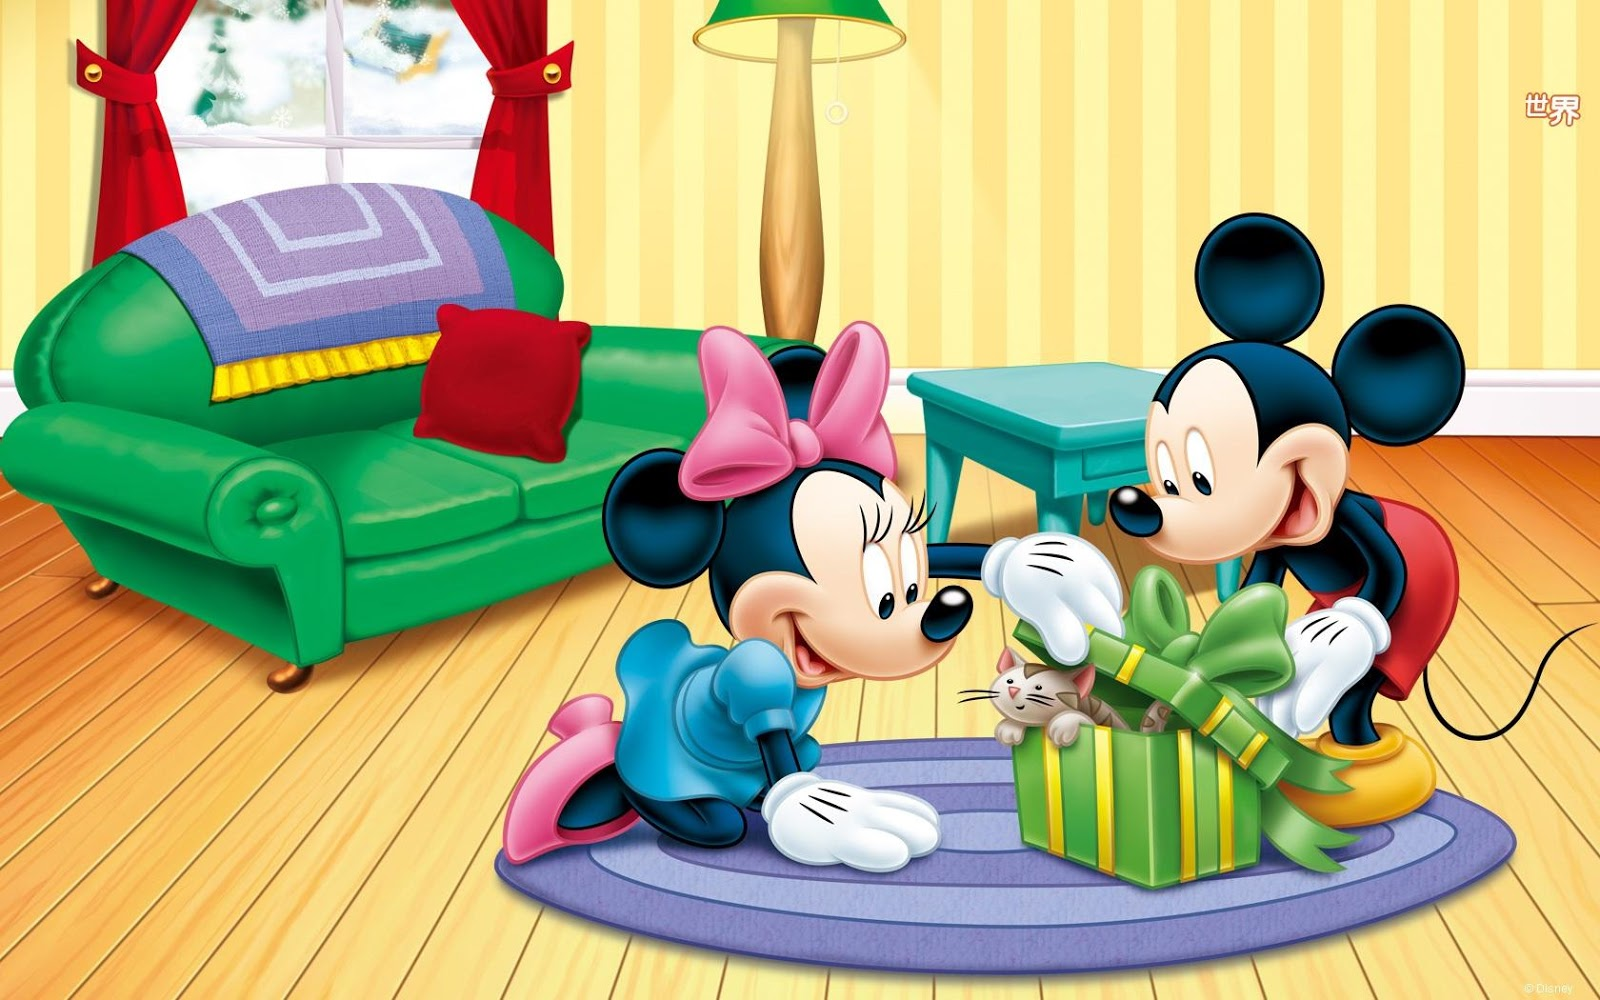 Wonderful Wallpaper Christmas Mickey Mouse - Mickey-and-Minnie-and-pets_1680x1050  Trends_346861 .jpg